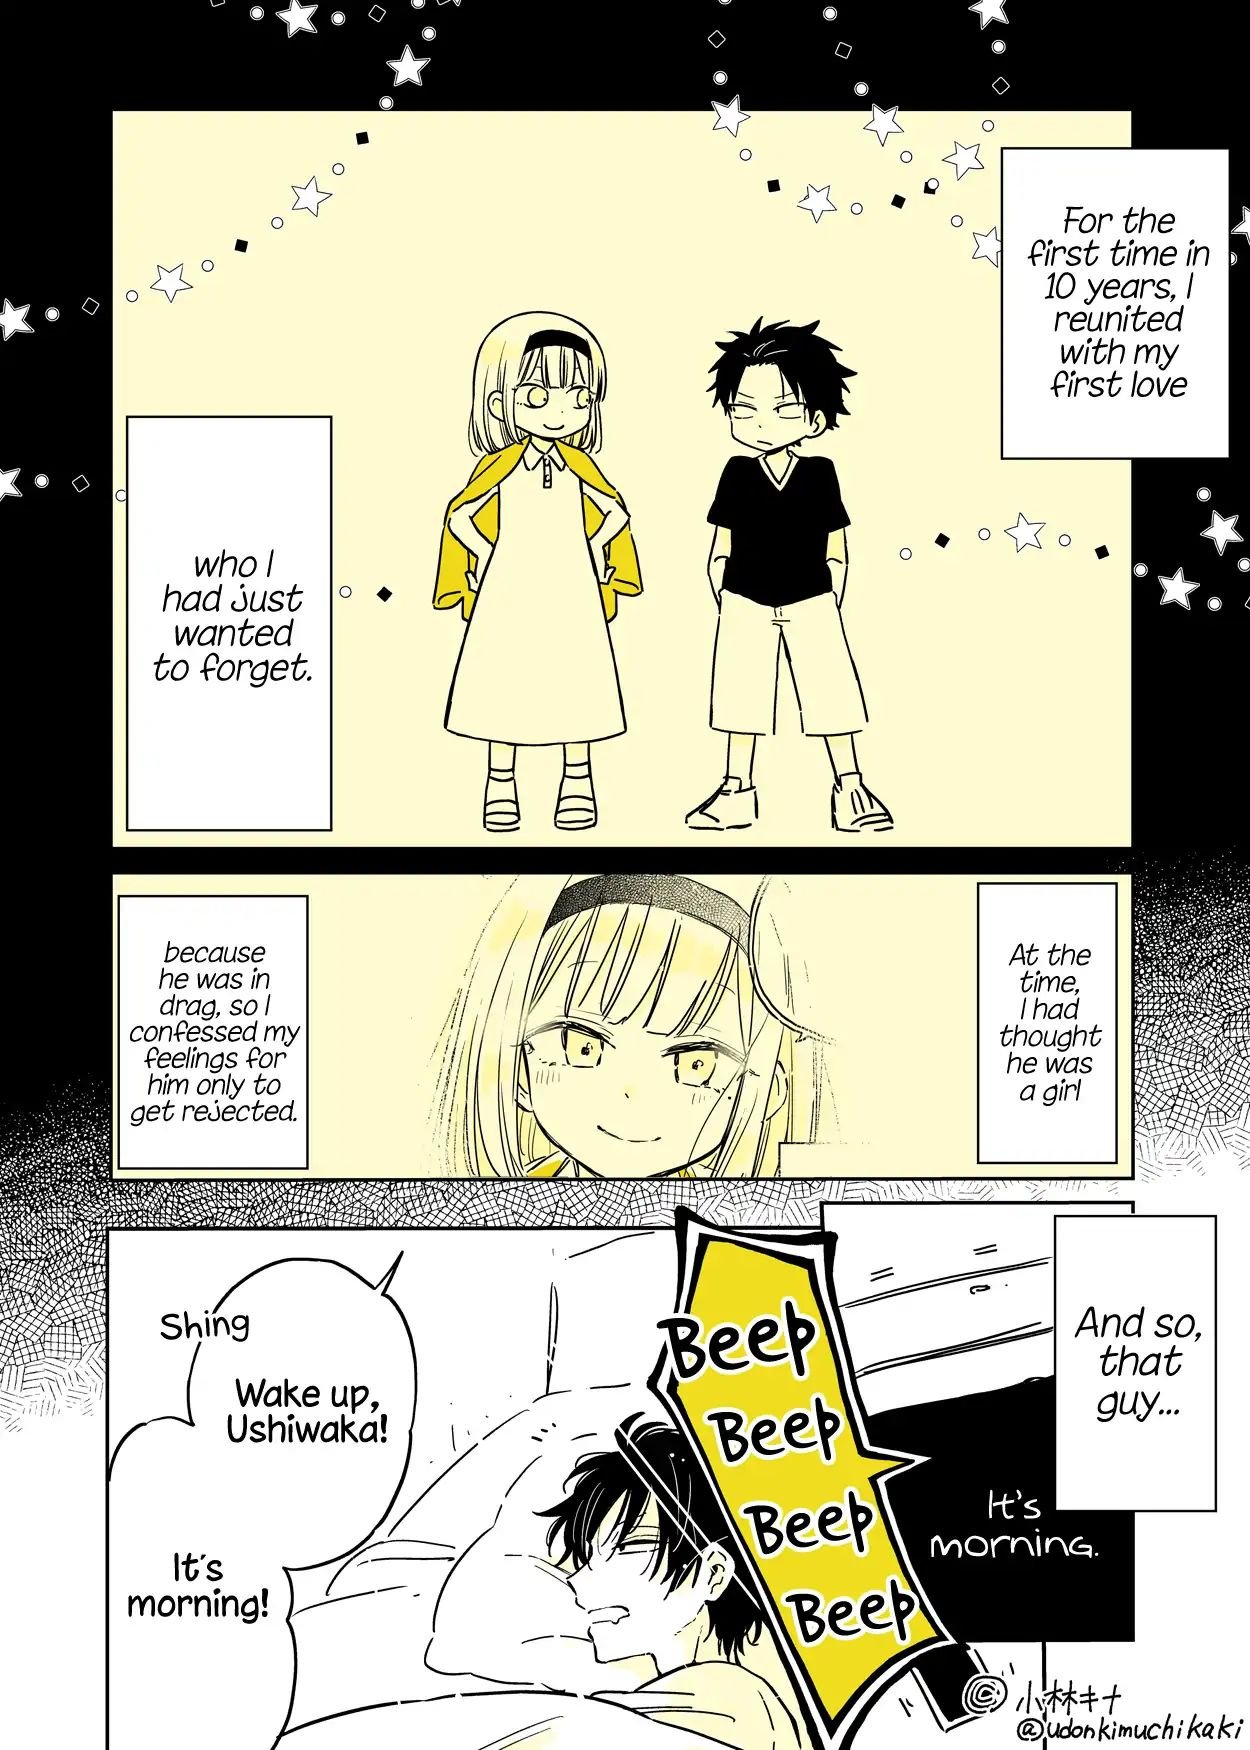 Manga About a Guy Who's Been Destroyed From His First Love Being a Pretty Girl - Chapter 2 Page 1